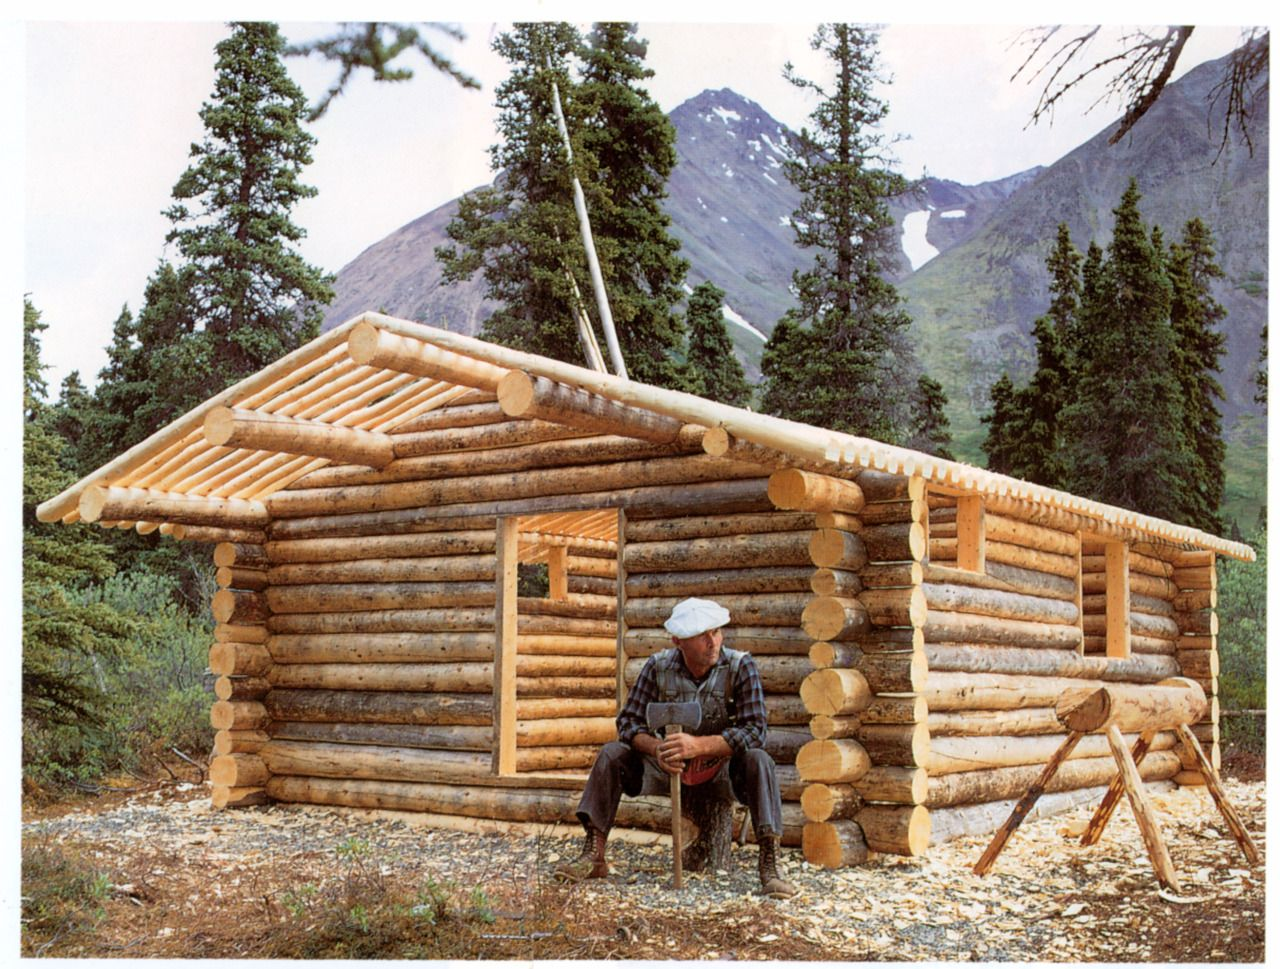 Superieur Compact Cabin Log Construction | ... Proenneke Takes A Break From Building  His Alaskan Log Cabin By Hand